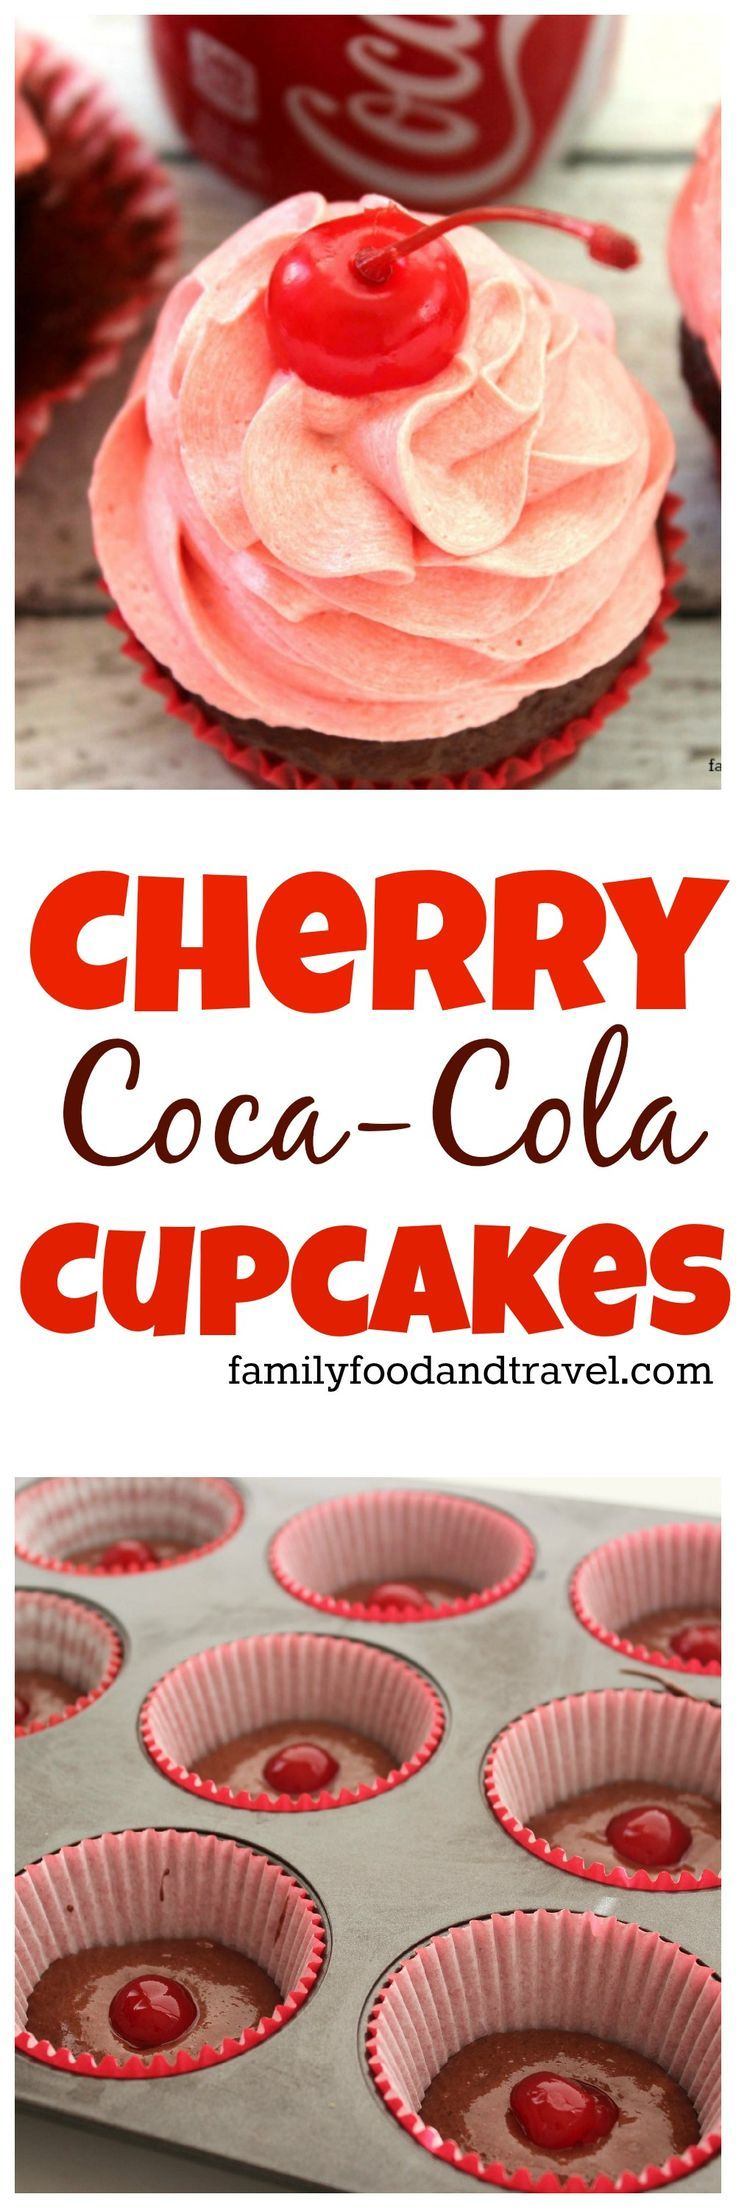 Cherry Coke Cupcakes are filled with all the flavours you love in Cherry Coke and are easy to make. Just grab a box mix and some fun add ins.